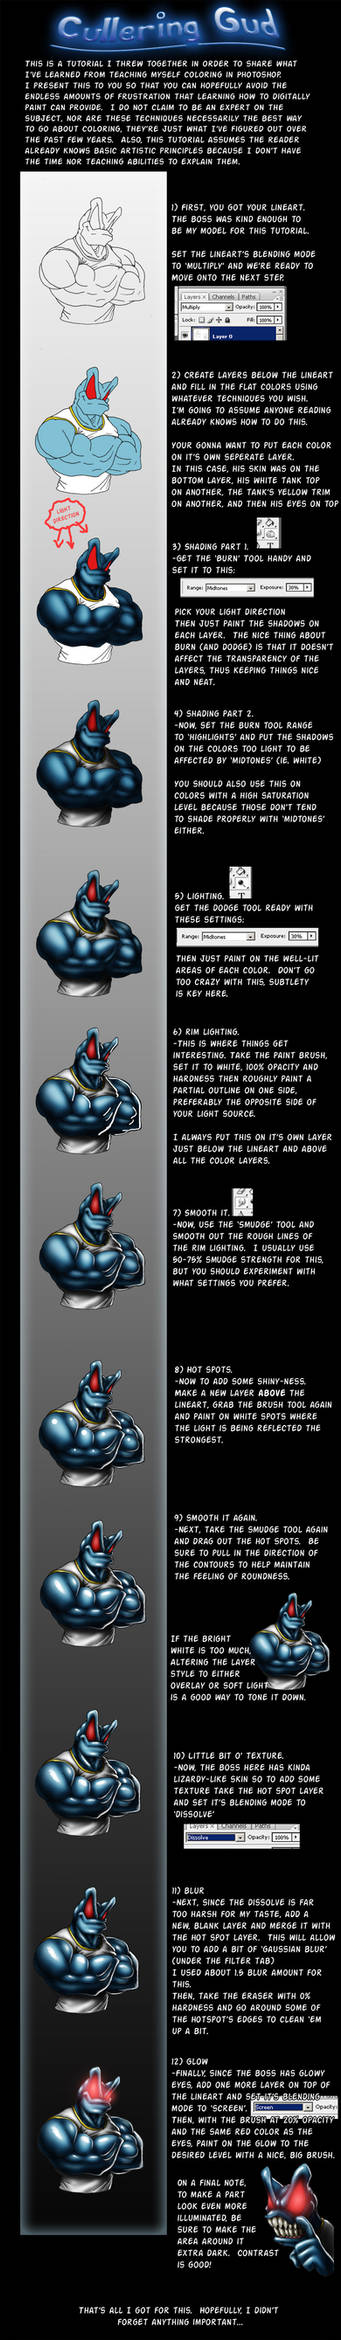 A 'Real' Coloring Tutorial